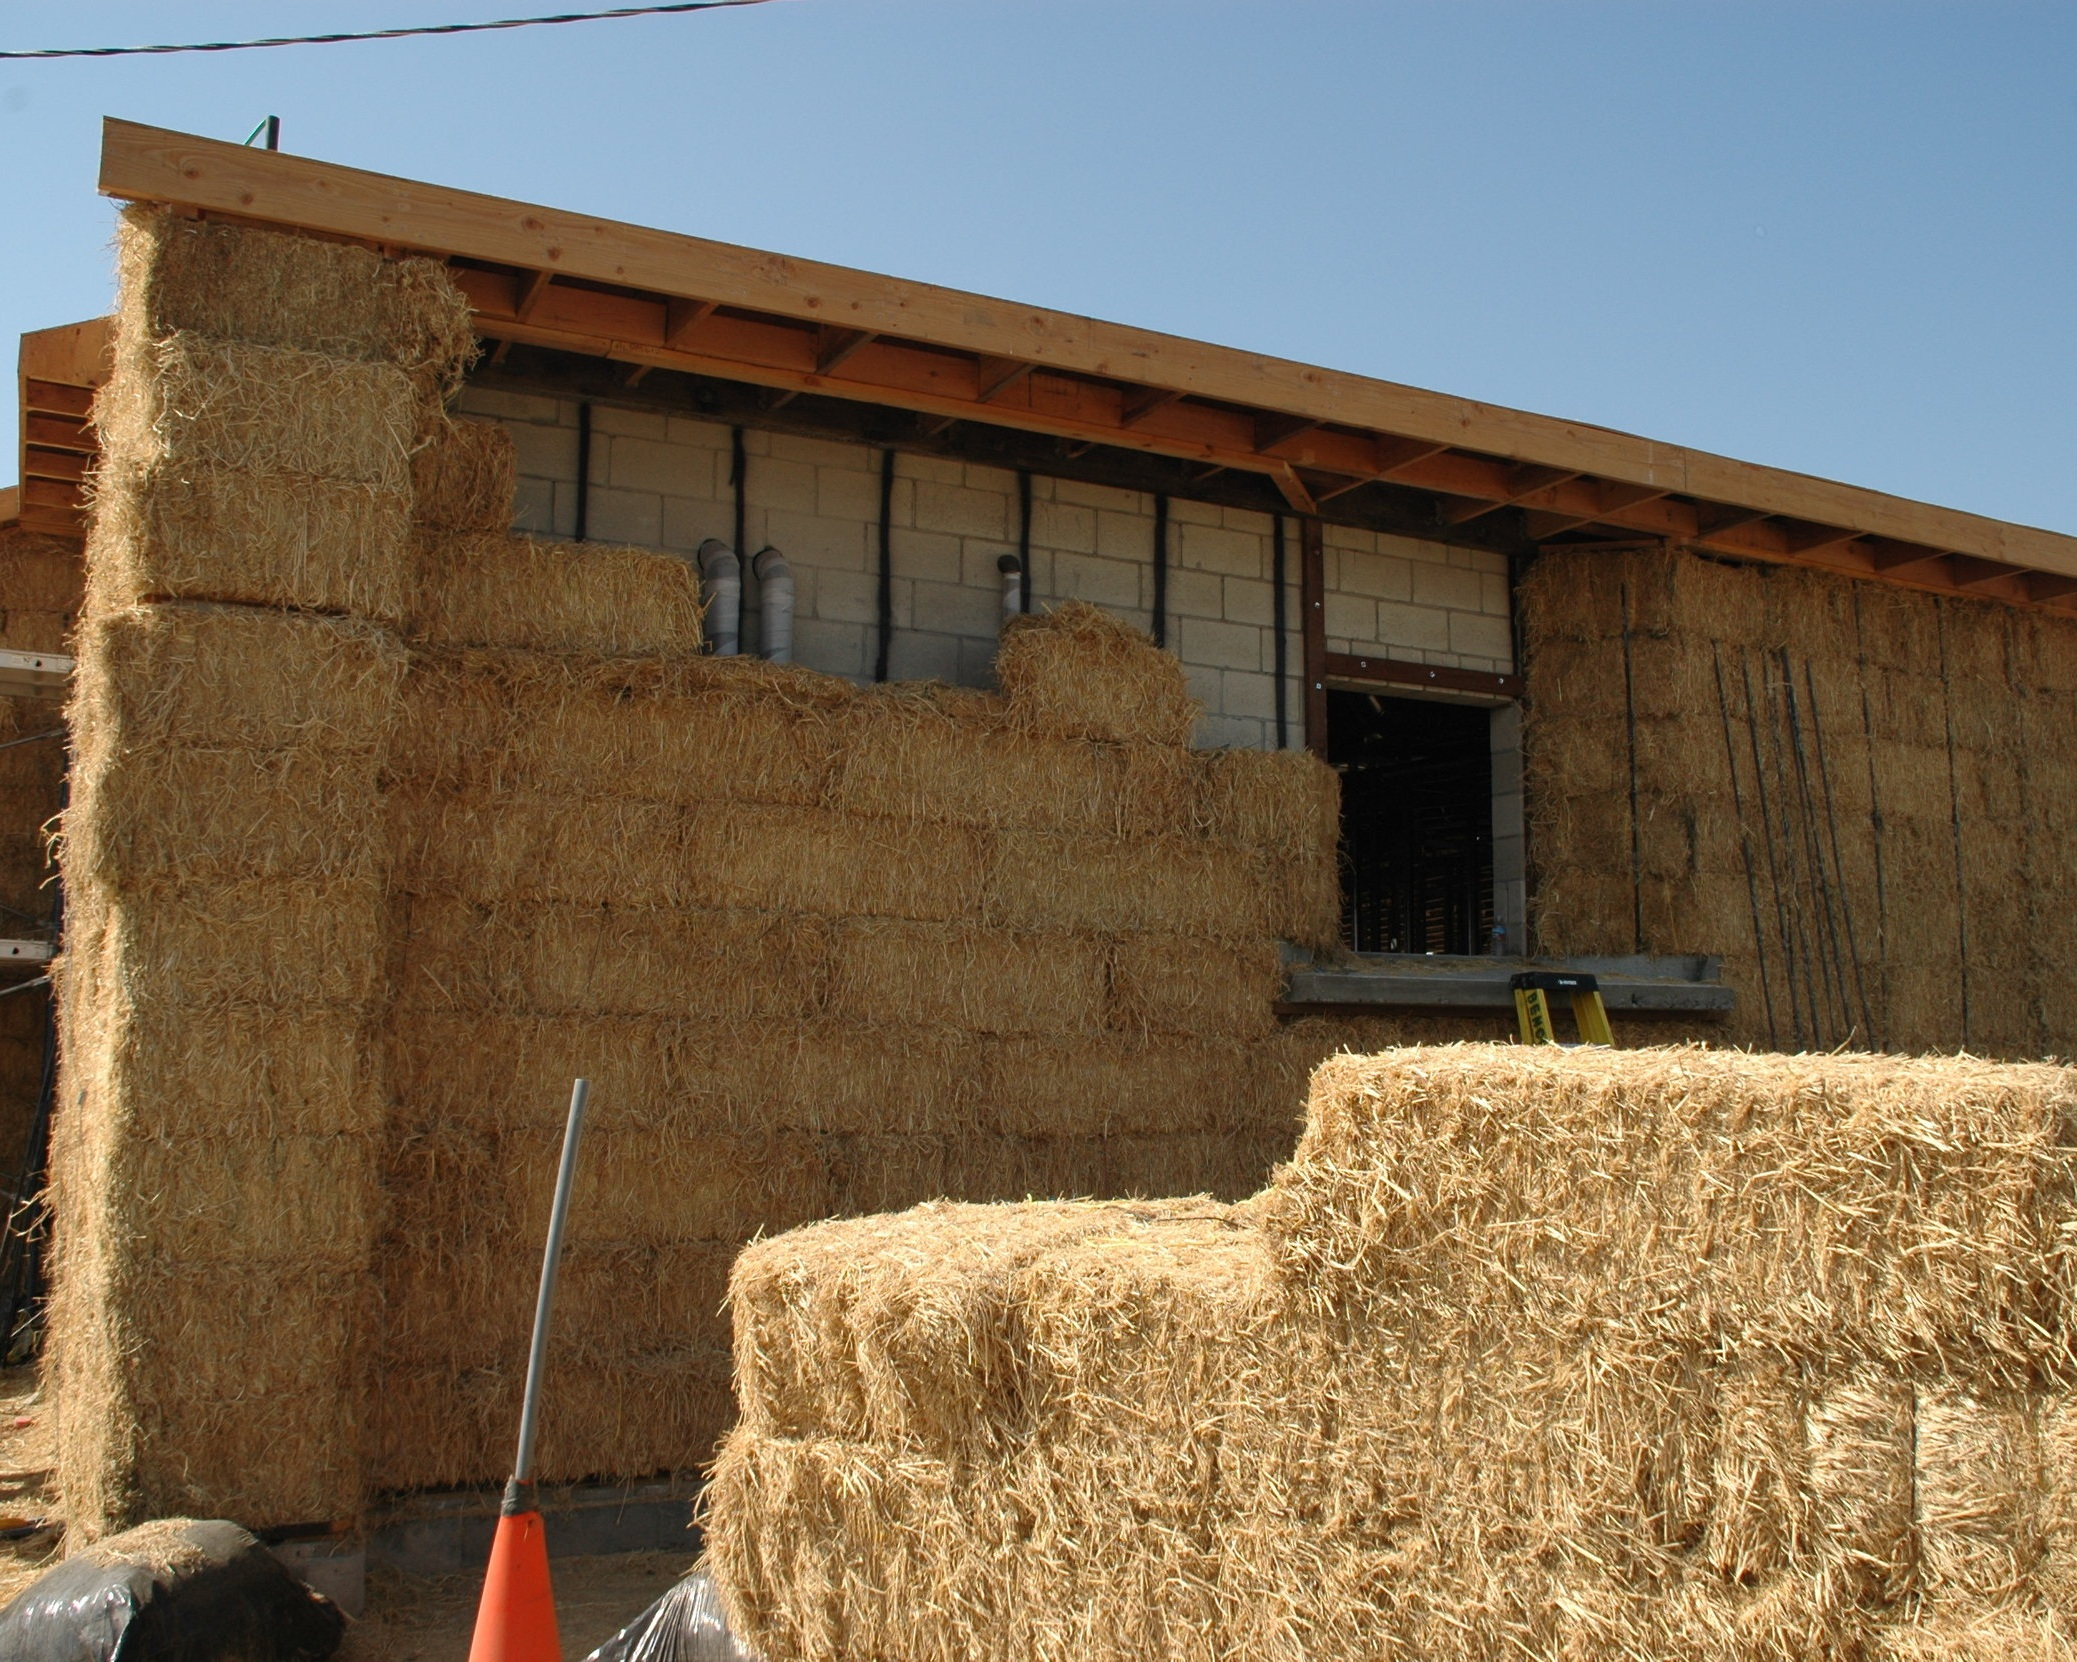 """UTILITY BILLS SLASHED. - Highly energy-efficient straw bale walls provide an equivalent thermal resistance of R-40, more than twice the thermal insulation of standard construction and result in substantially lower heating and air conditioning bills. This, together with proper orientation of windows, a super-insulated and reflective """"cool roof"""", and a night air ventilation system result in utility bills which can be 50% less than conventional construction. The additional building mass provided by straw bale serves as a """"thermal flywheel"""", helping to reduce indoor temperature variation, improving the thermal comfort of occupants."""